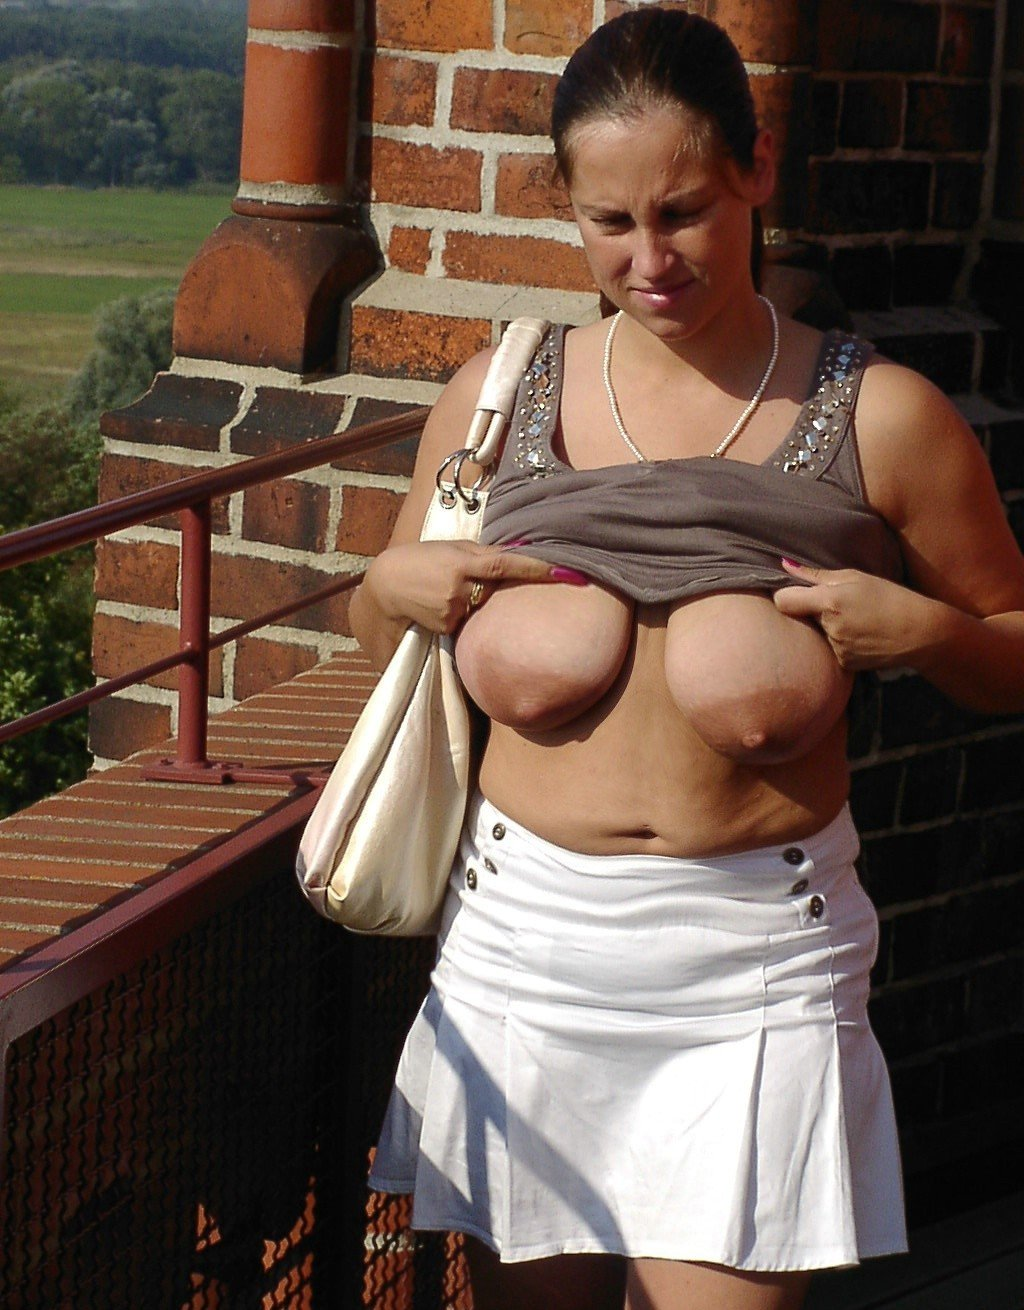 Hot Wife With Big Tits 4